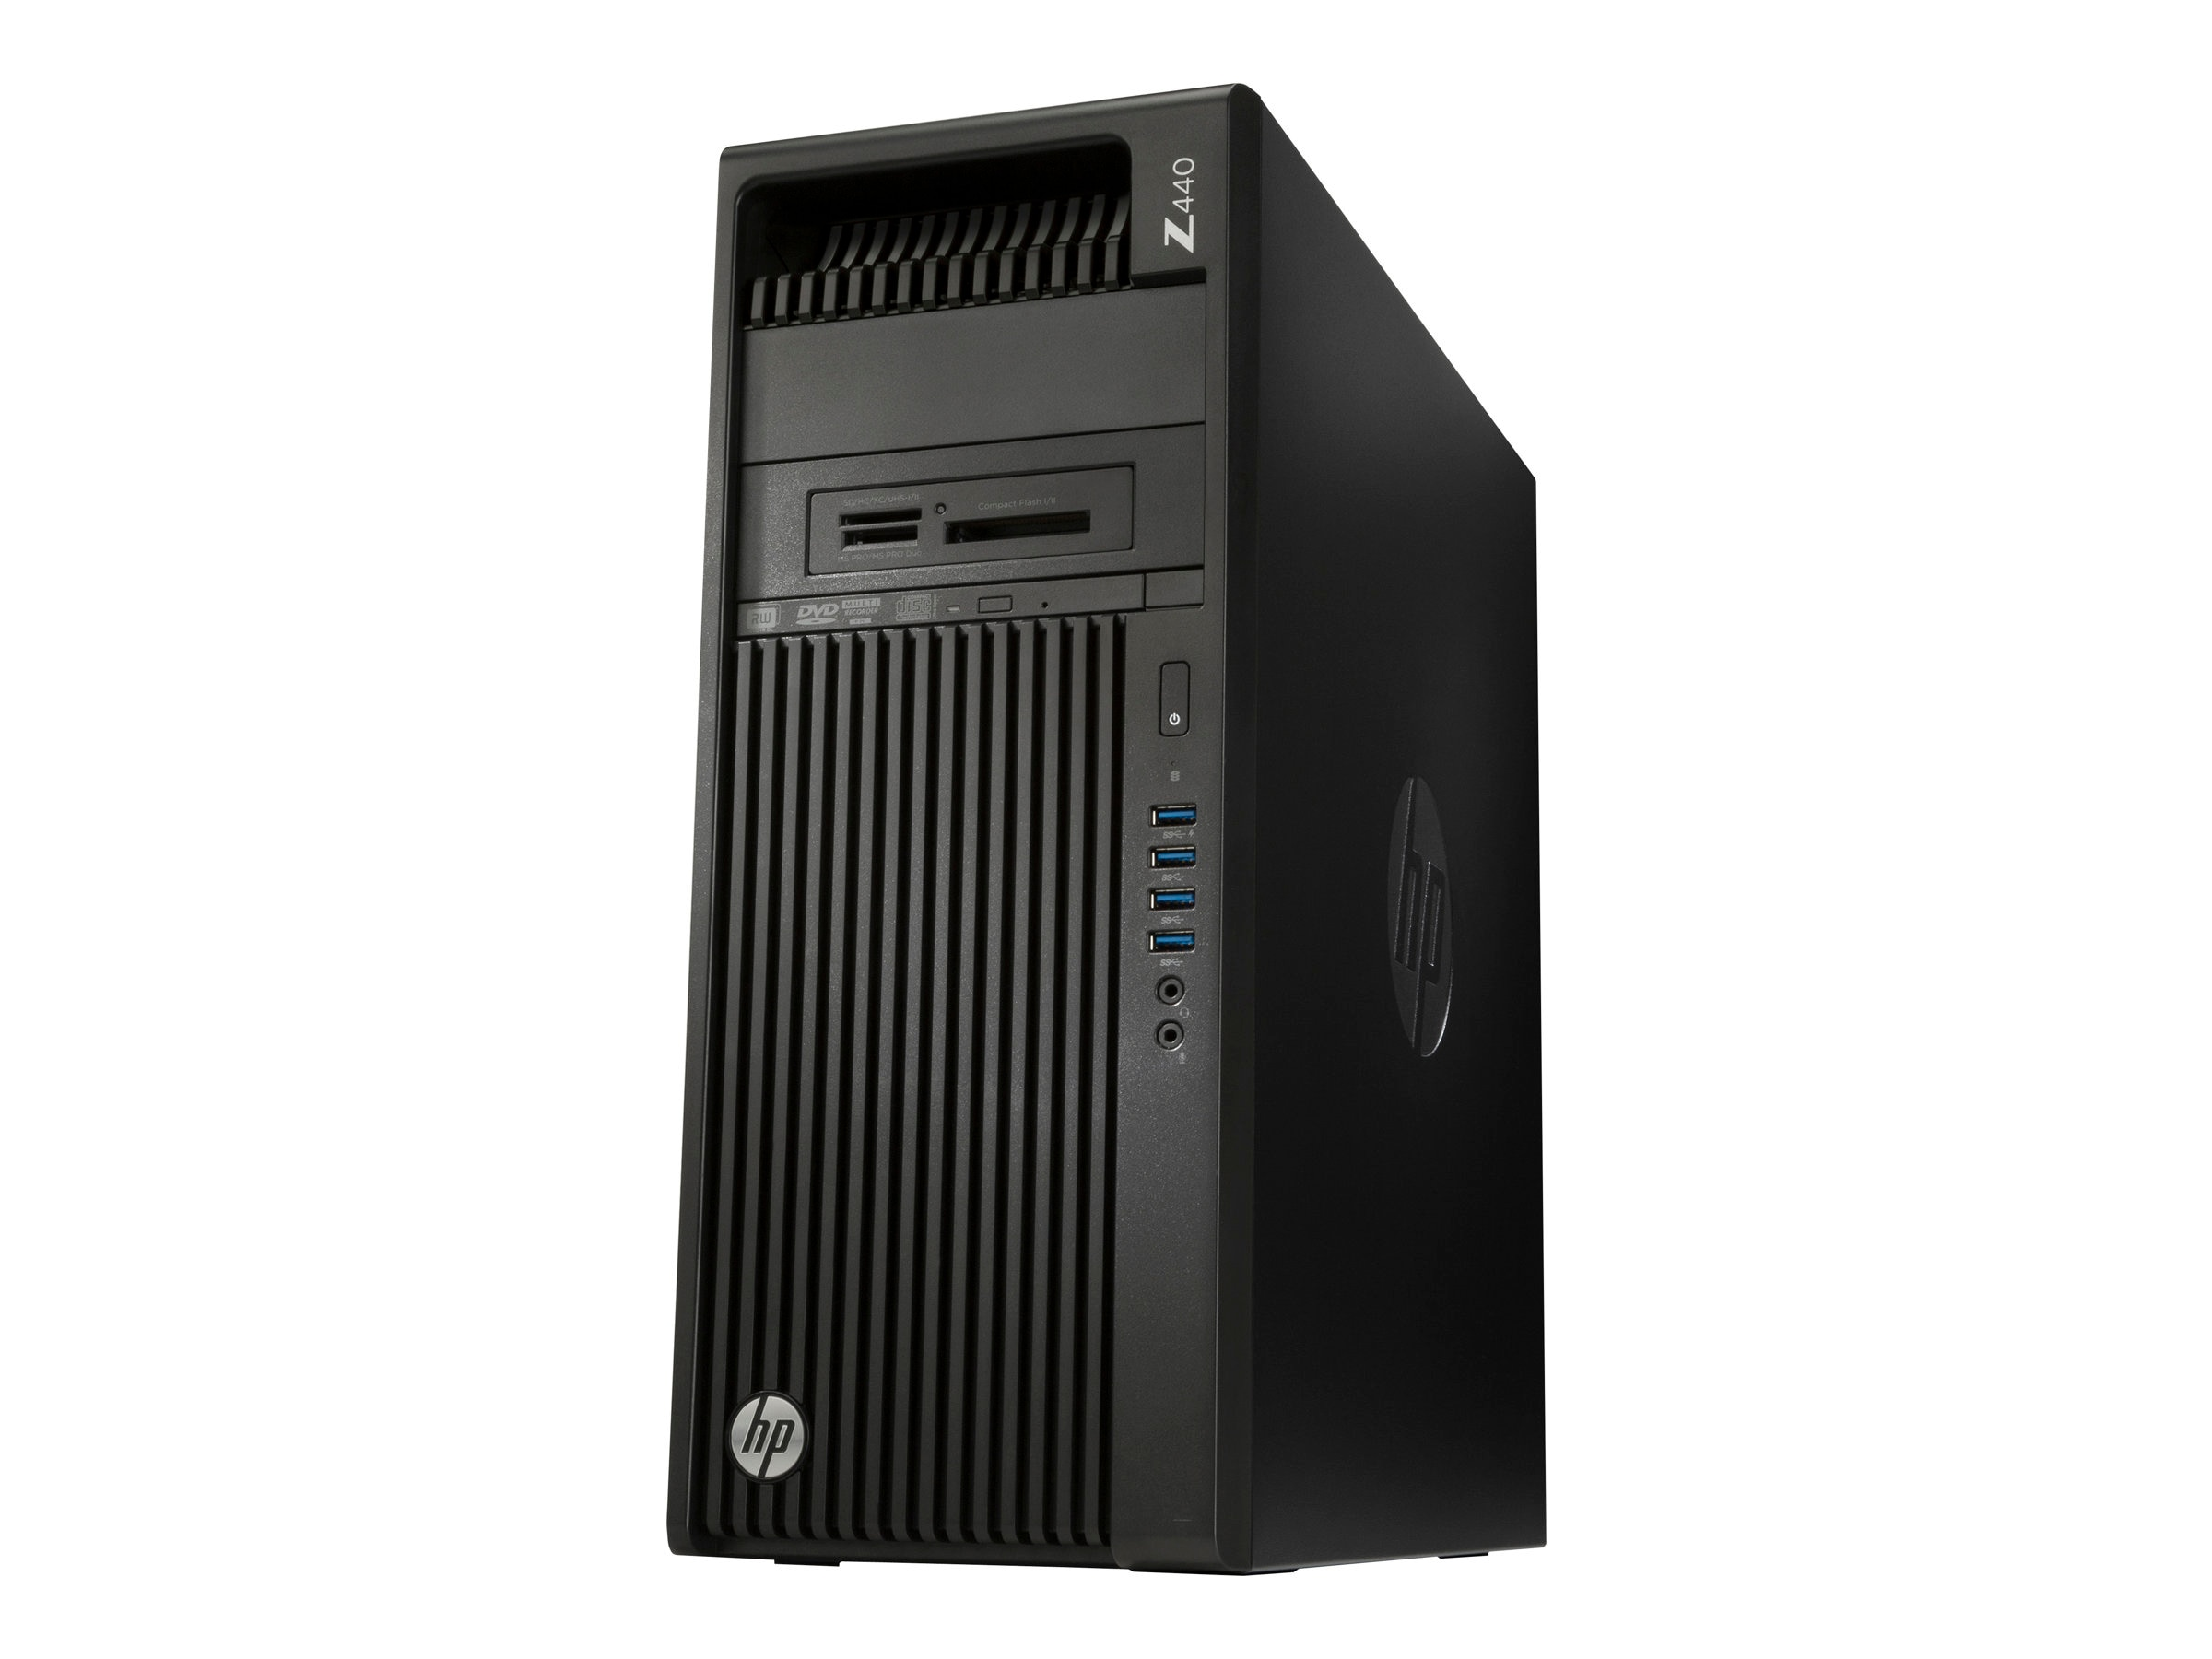 HP Z440 3.6GHz Xeon Microsoft Windows 7 Professional 64-bit Edition   Windows 10 Pro